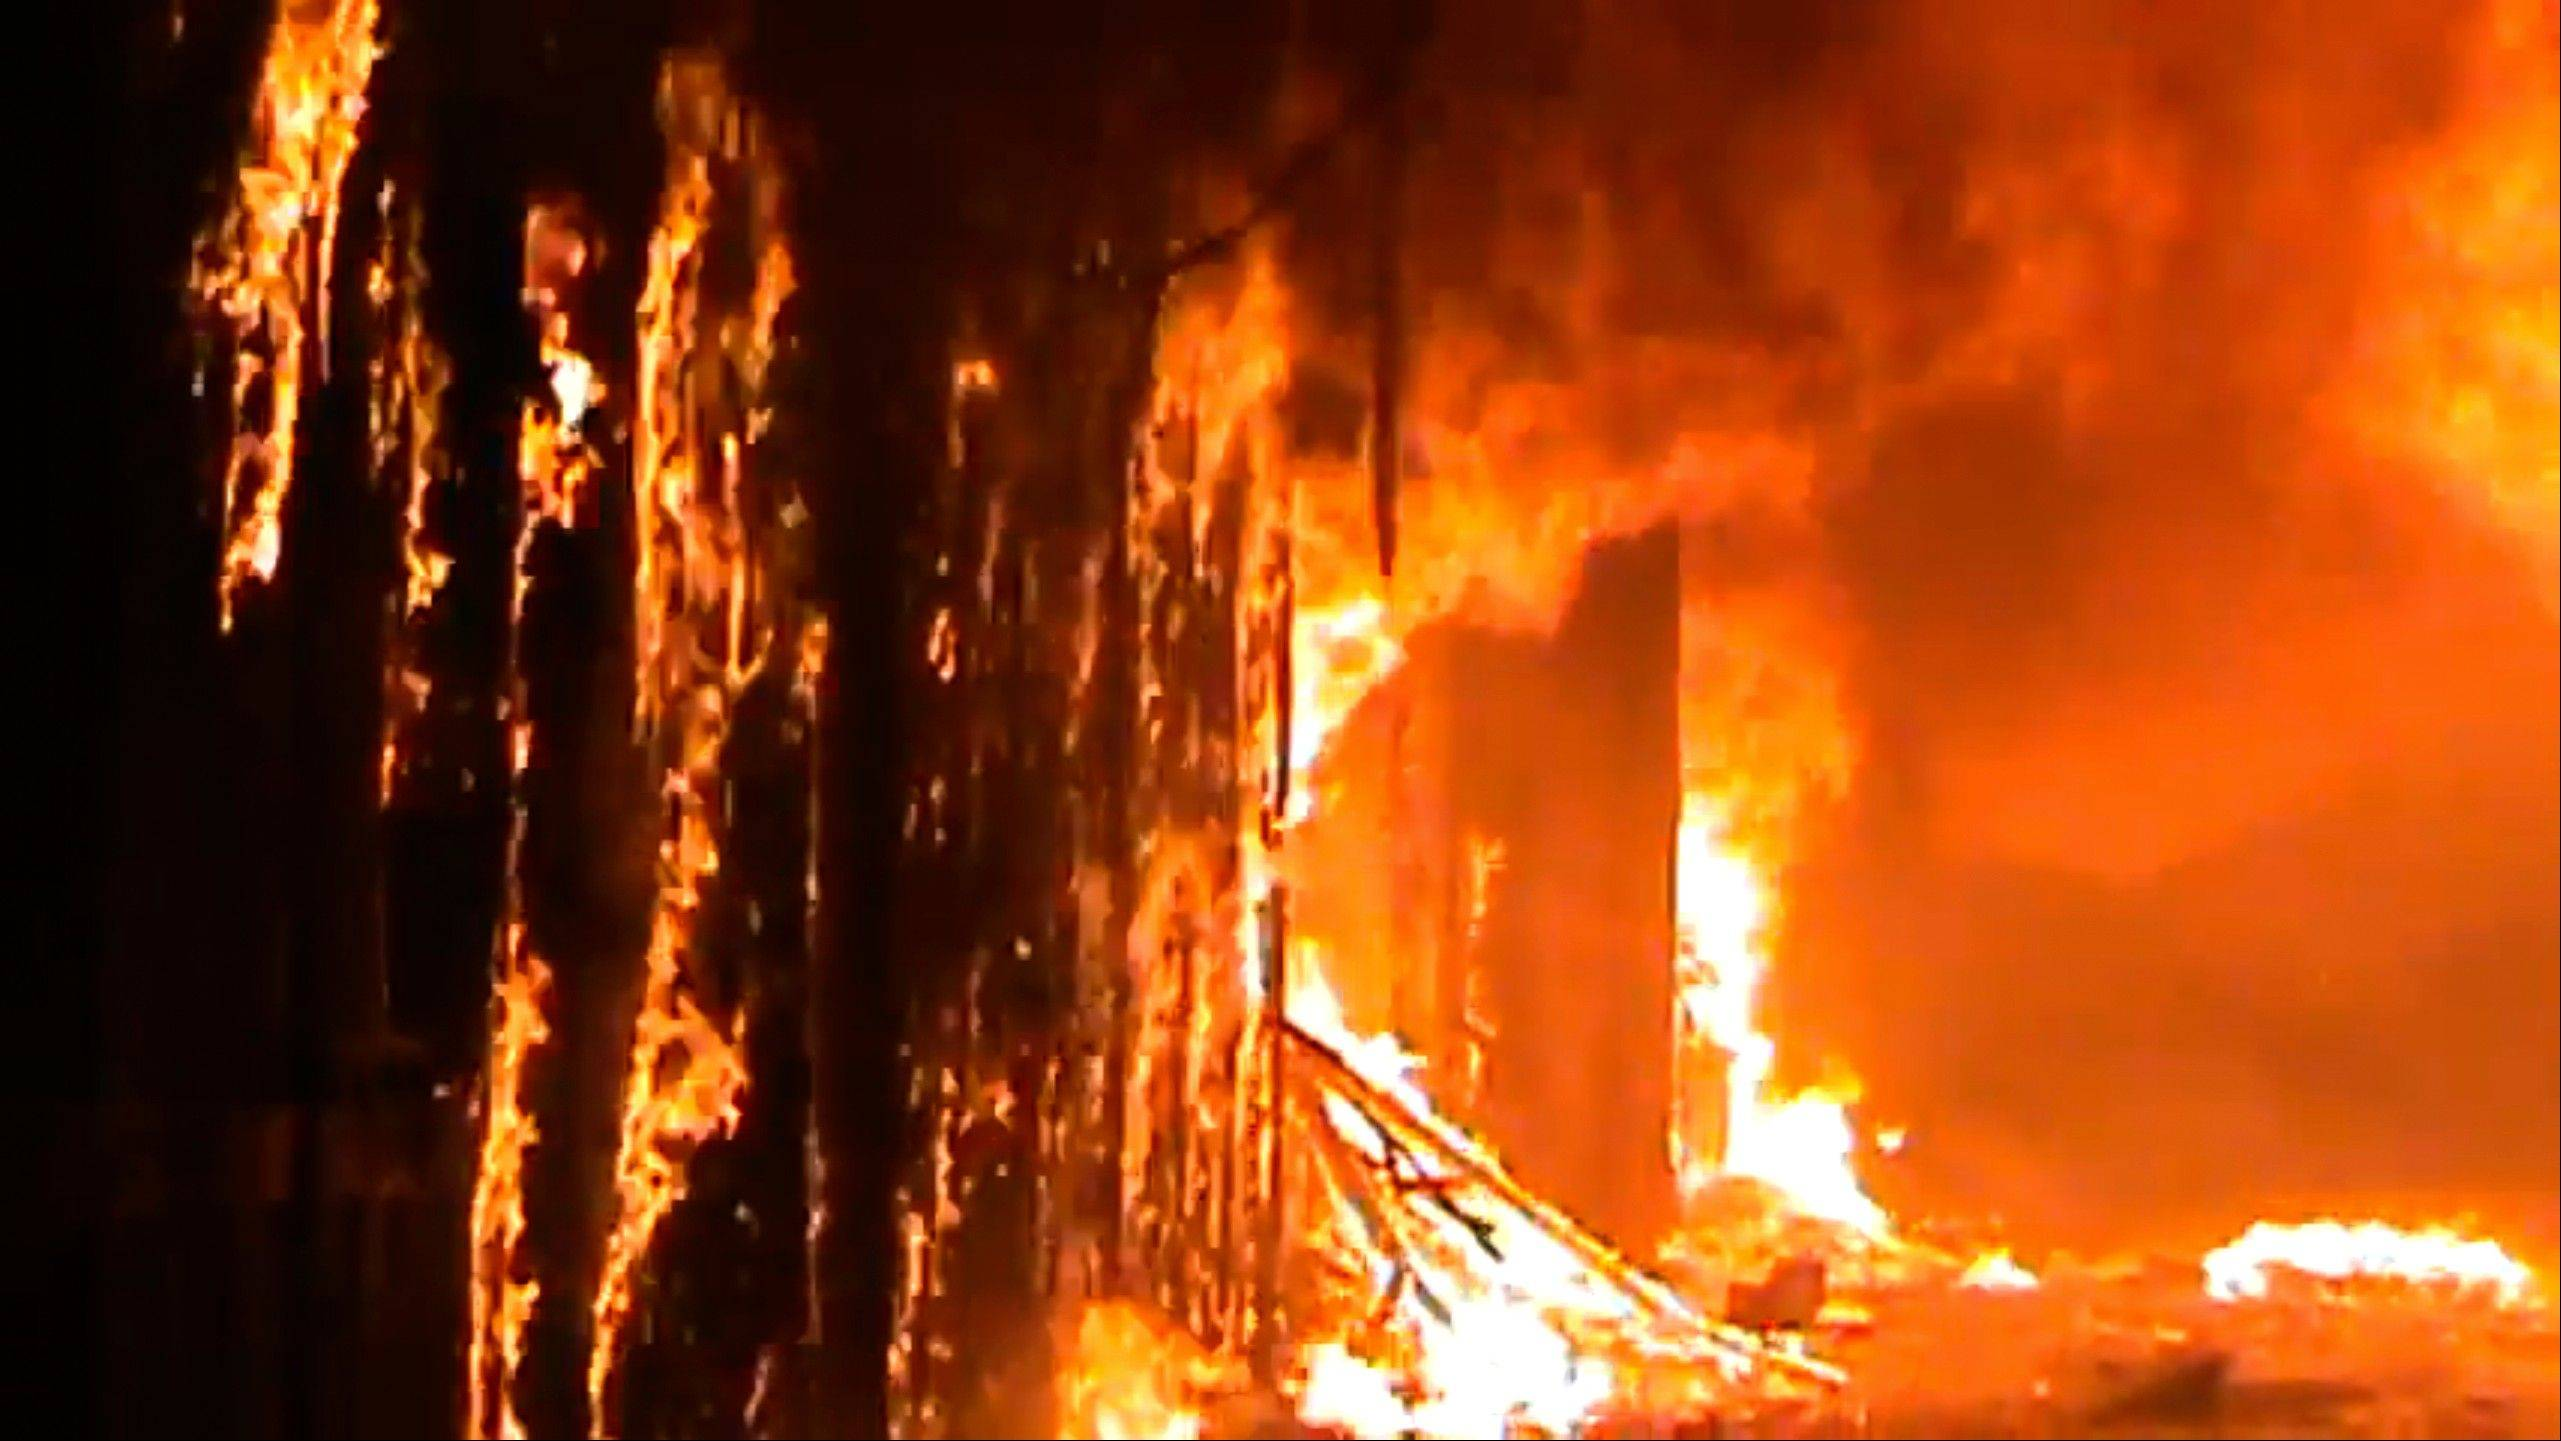 In this image taken from video obtained from Shaam News Network (SNN), which has been authenticated based on its contents and other AP reporting, a fire rages at a medieval souk in Aleppo, Syria. Syrian rebels and residents of Aleppo struggled Saturday to contain a huge fire that destroyed parts of the city's medieval souks, or markets, following raging battles between government troops and opposition fighters there, activists said. Some described the overnight blaze as the worst blow yet to a historic district that helped make the heart of Aleppo, Syria's largest city and commercial hub, a UNESCO world heritage site.